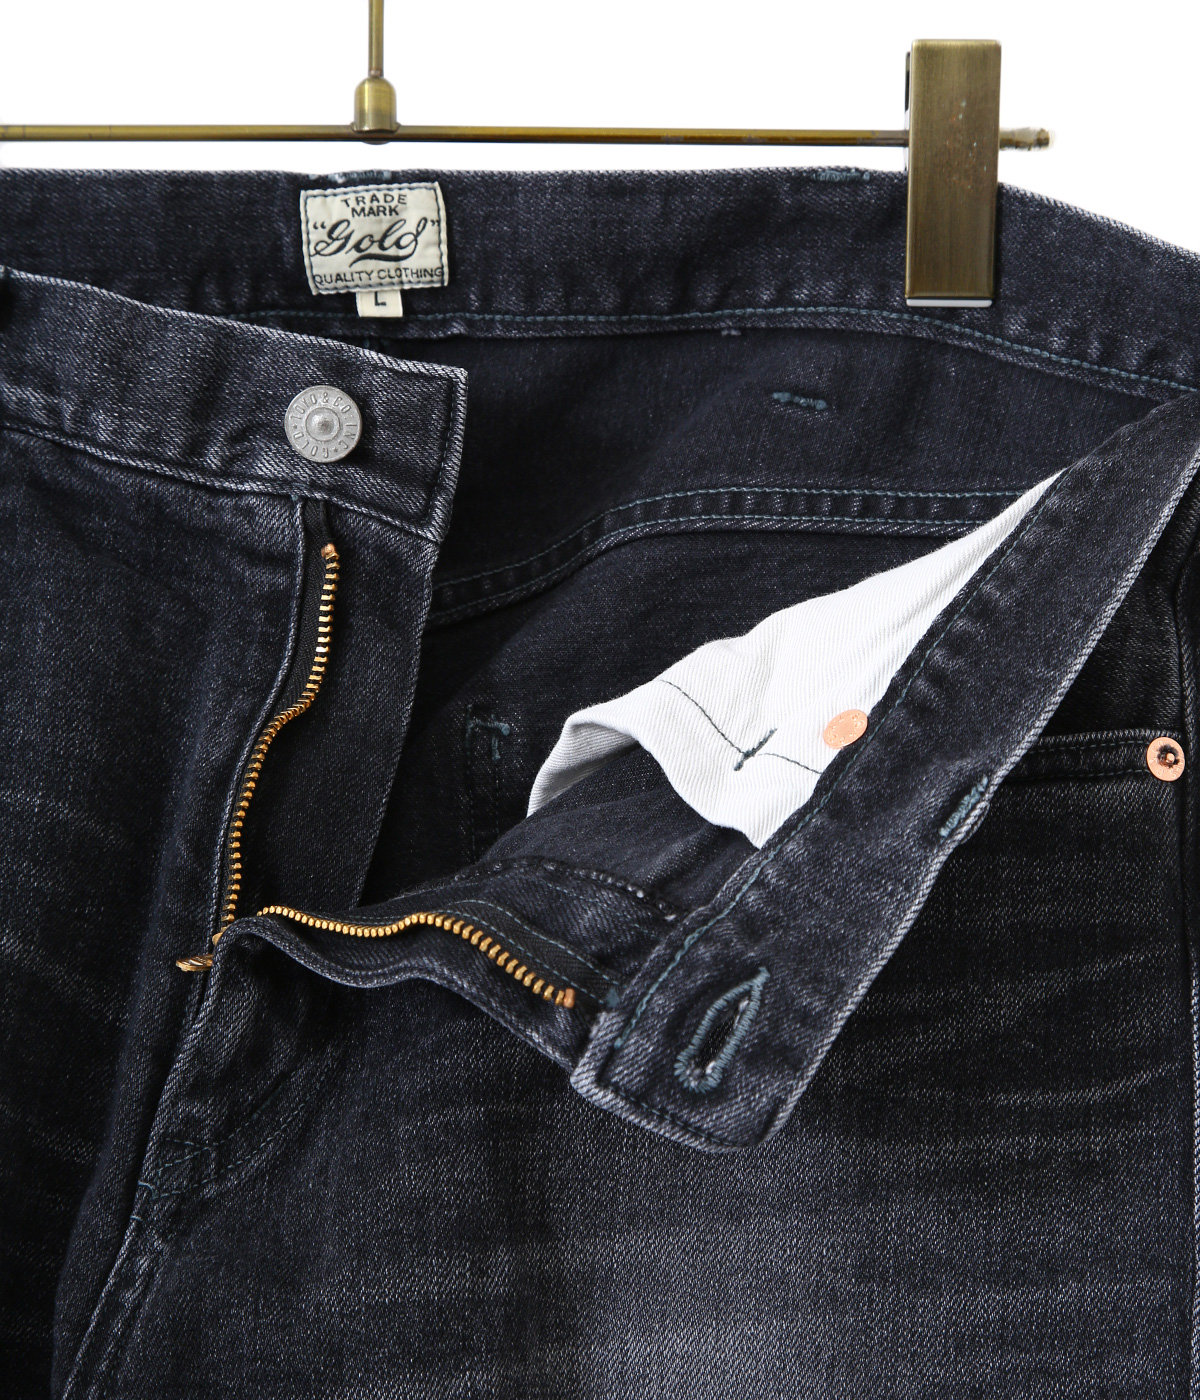 12oz. STRECH DENIM 5POCKET SLIM PANTS HARD WASHED